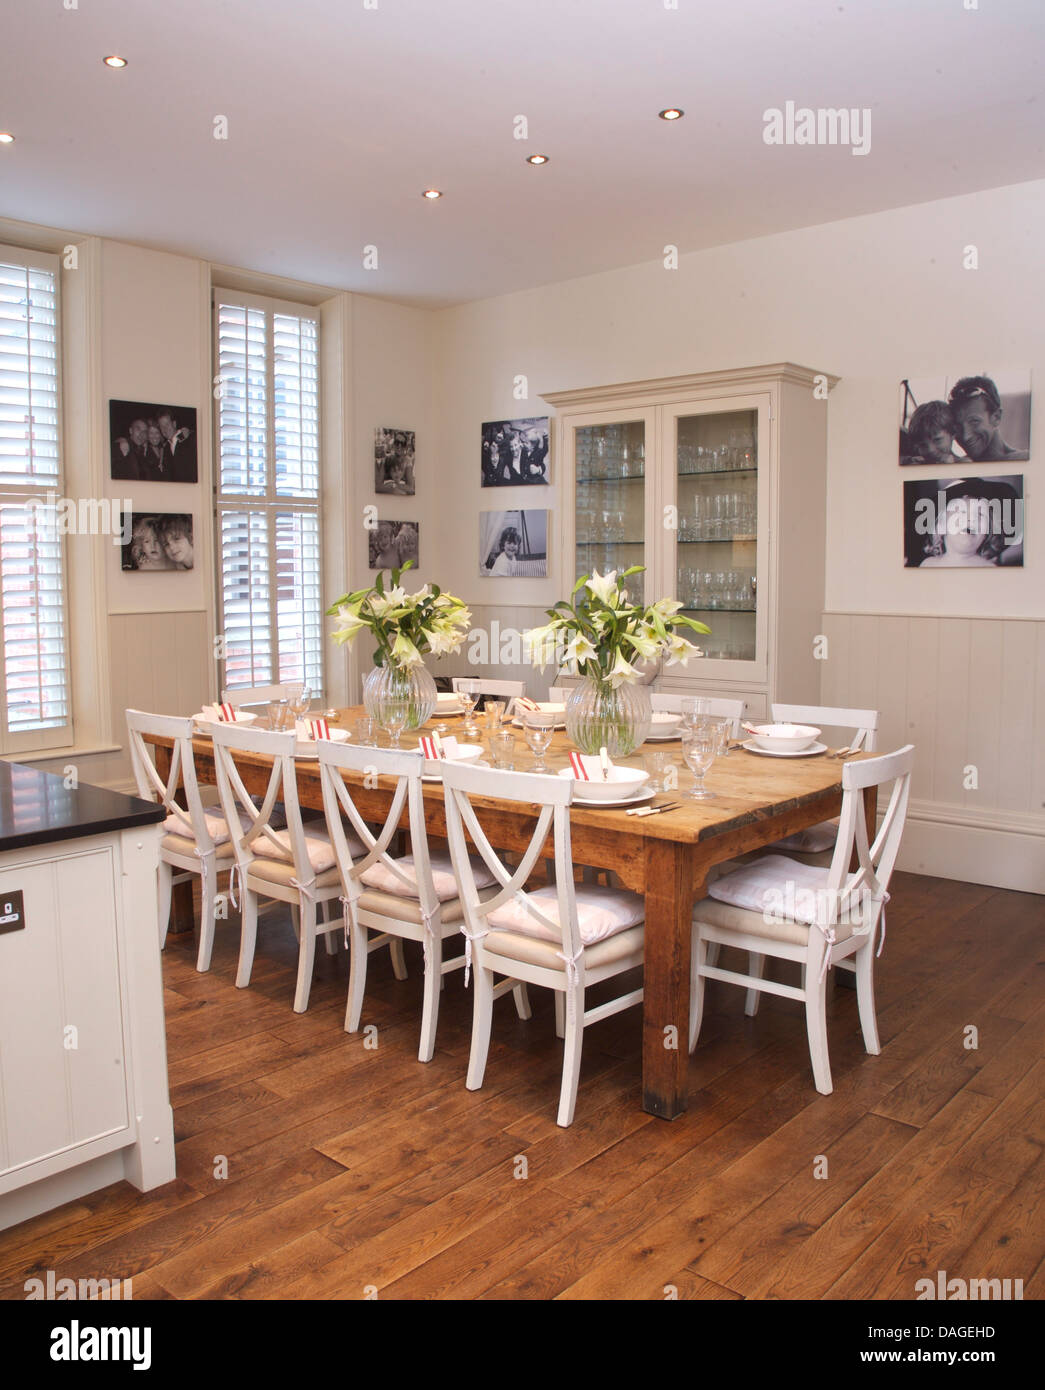 White chairs at simple wood table in modern white kitchen dining white chairs at simple wood table in modern white kitchen dining room with wooden flooring and framed blackwhite photographs dzzzfo